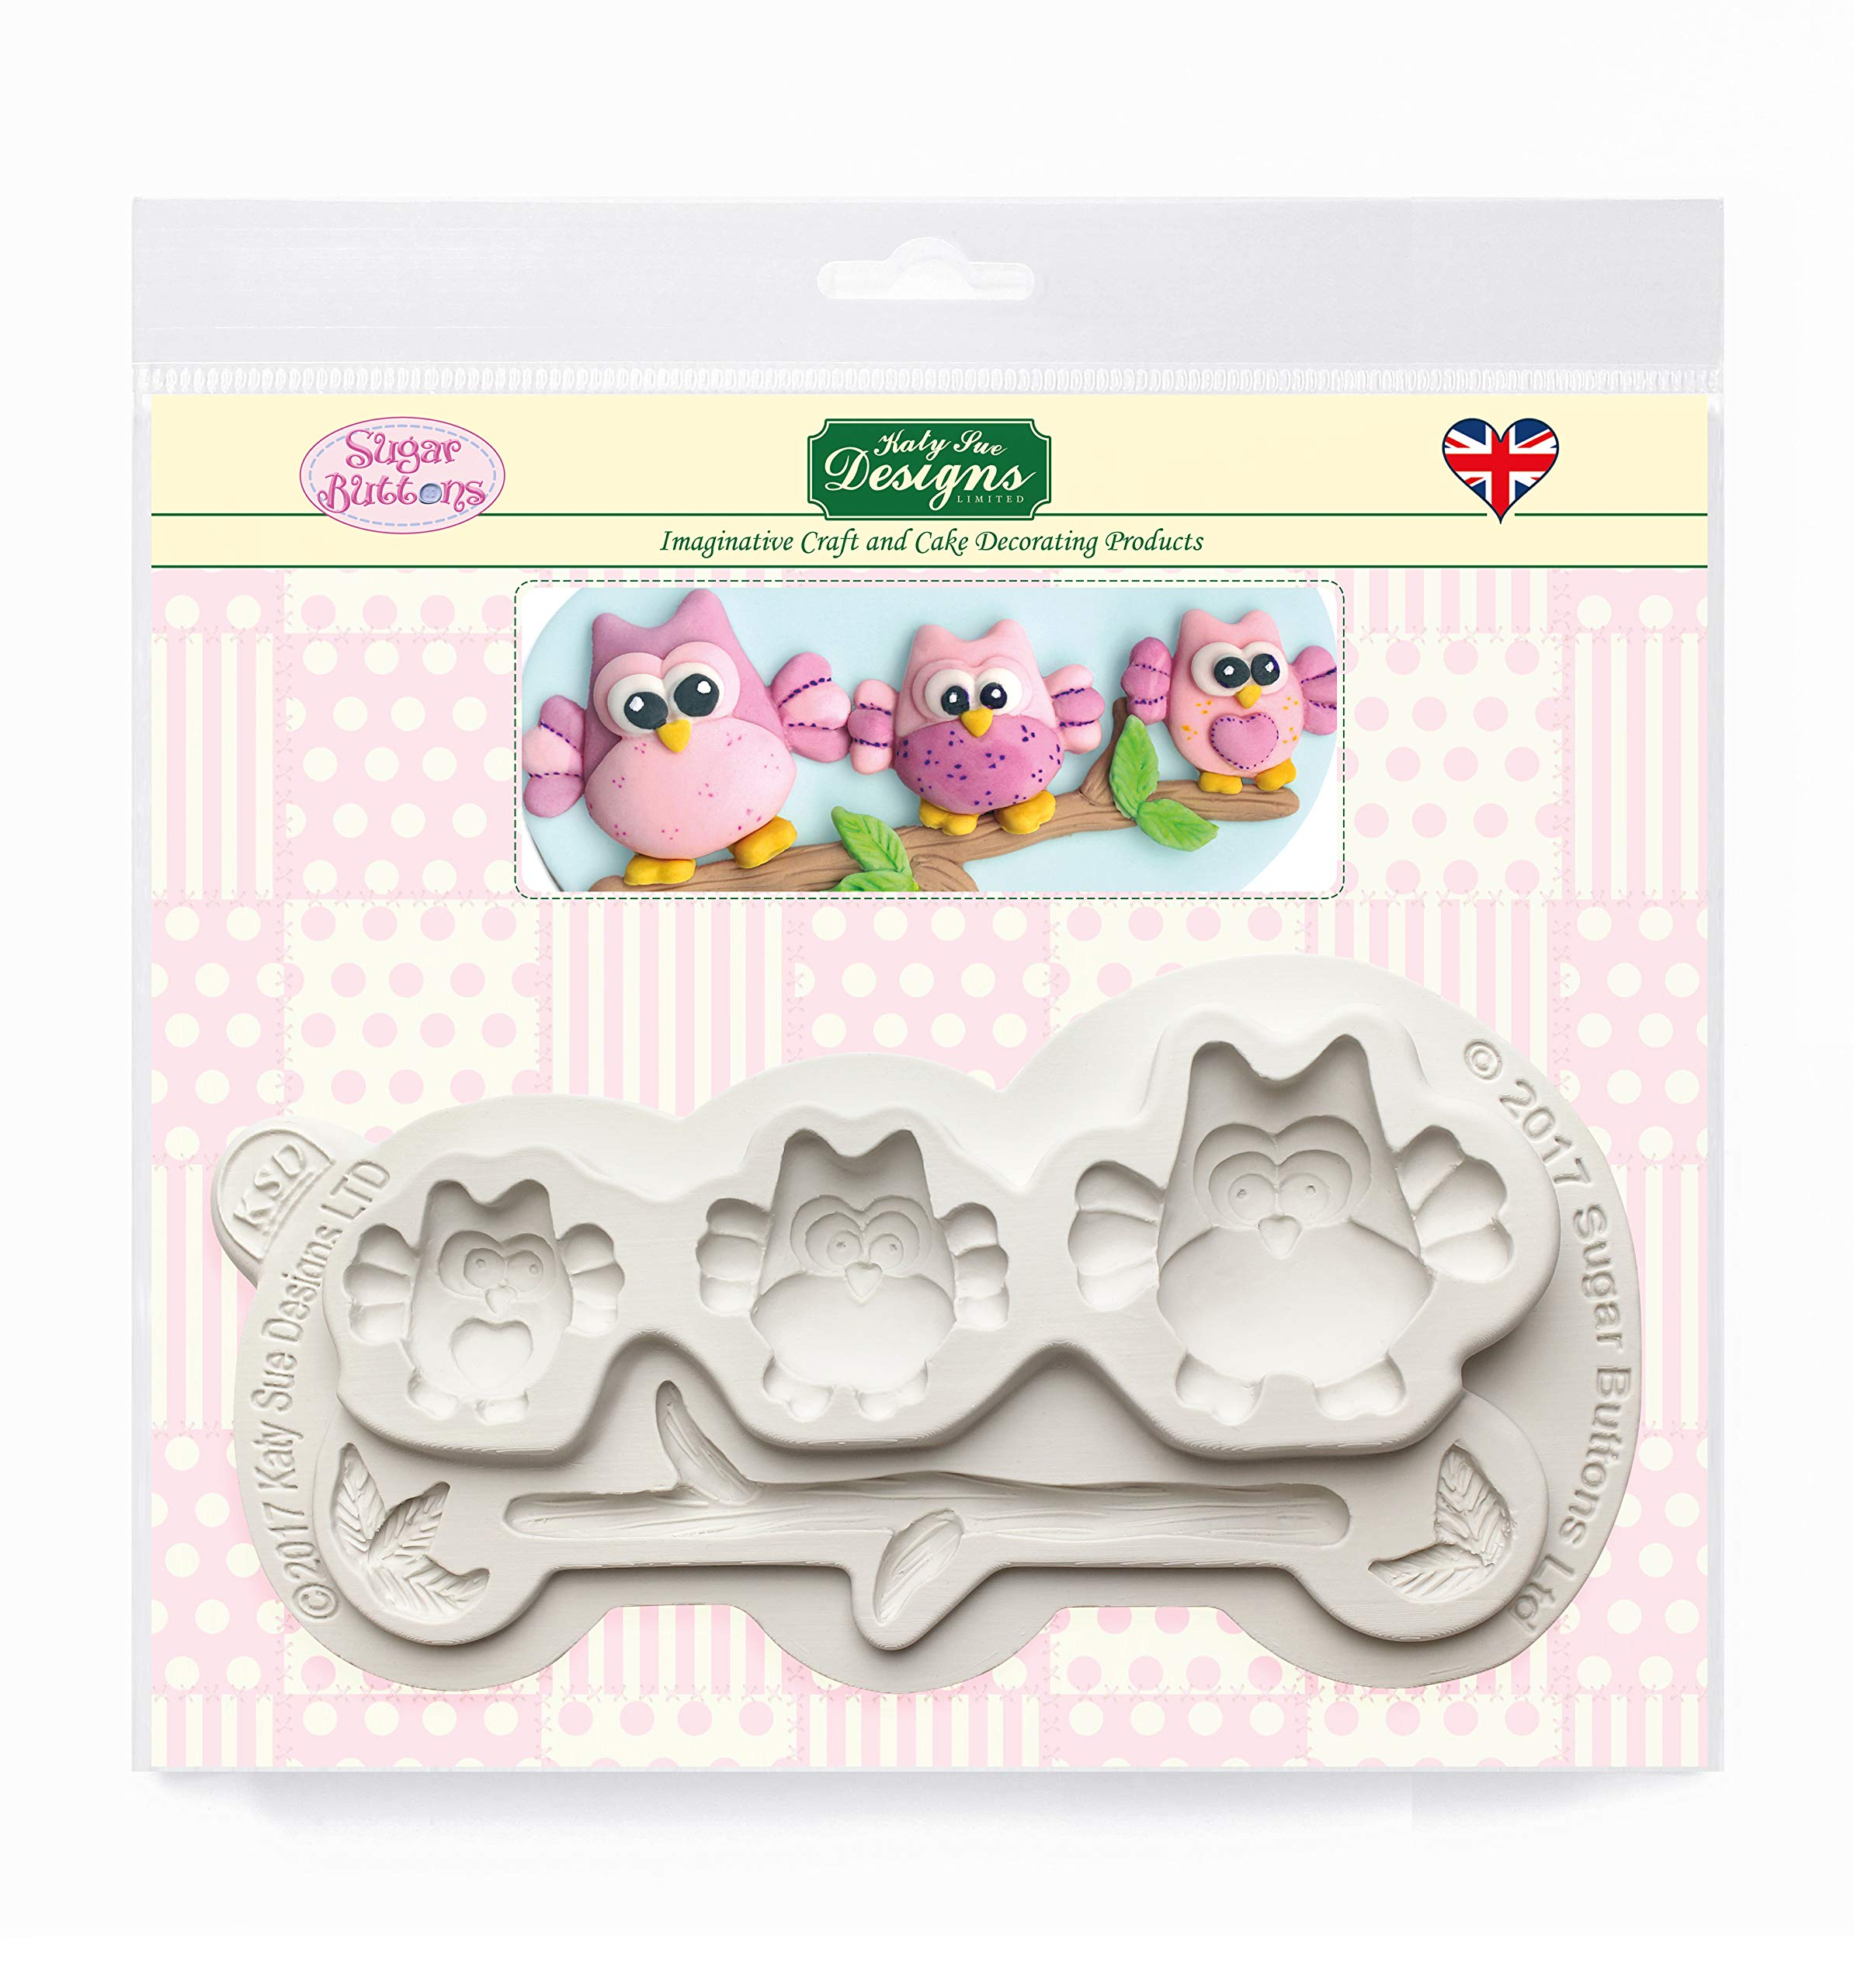 Sugar Buttons Owls Silicone Mold for Clay, Ceramics, Cake Decorating, Cupcakes, Crafts, Cards and Candies, Food Safe